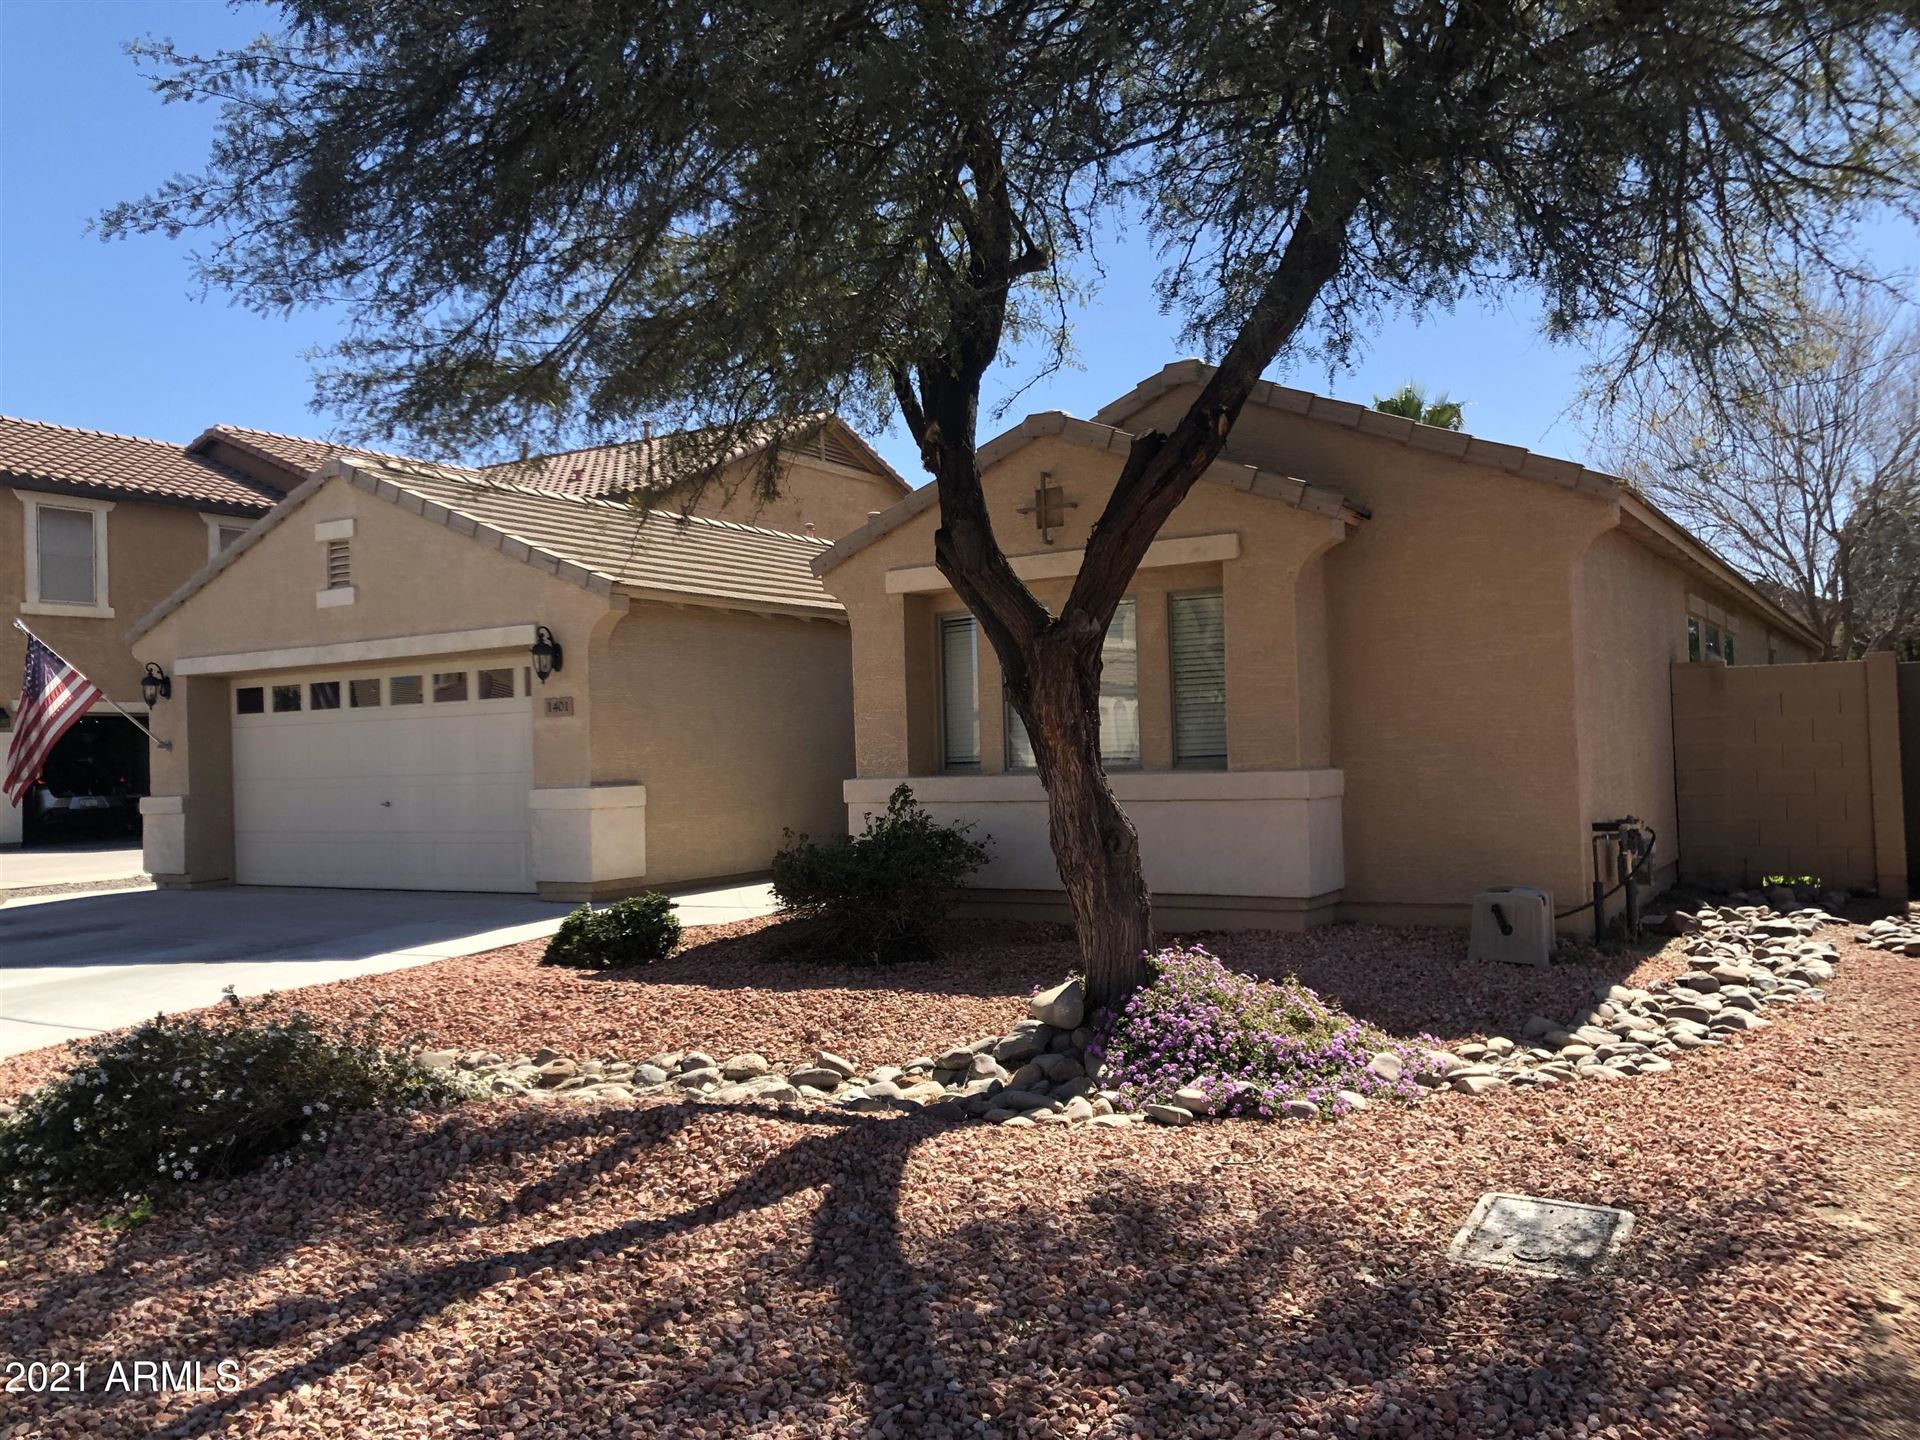 Photo of 1401 E DEBBIE Drive, San Tan Valley, AZ 85140 (MLS # 6199058)